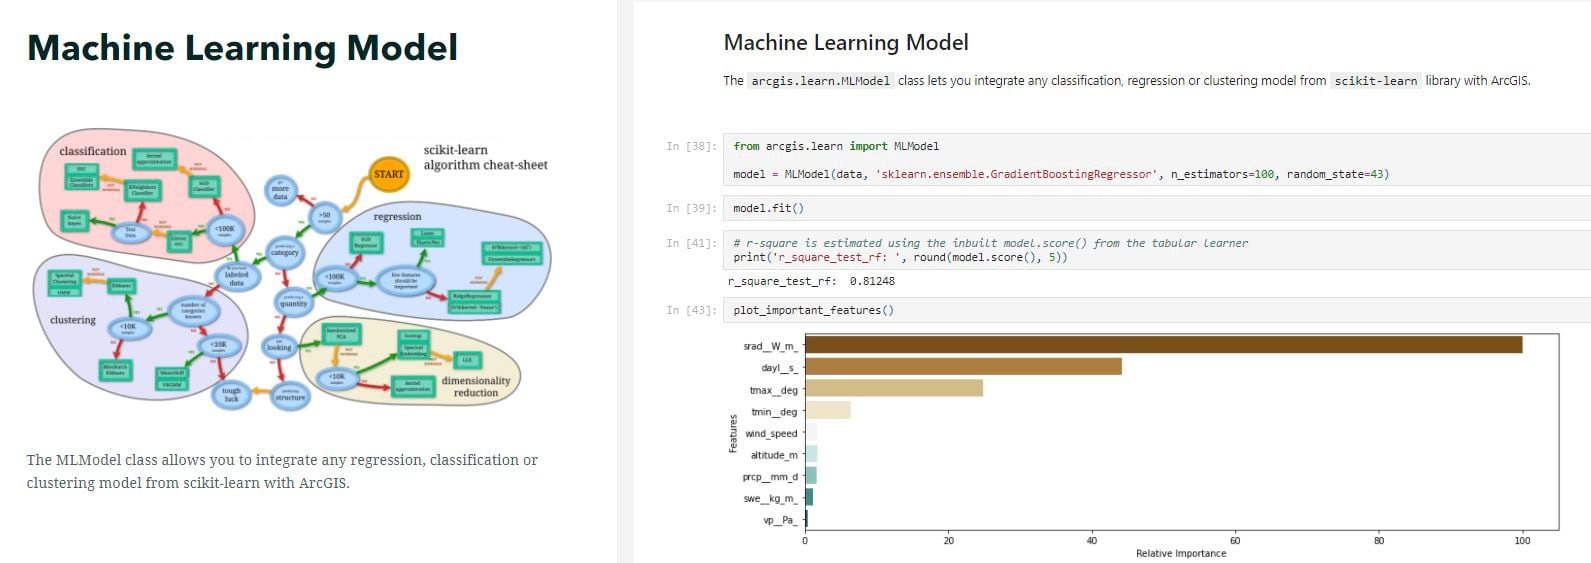 The MLModel class allows you to integrate any regression, classification or clustering model from scikit-learn with ArcGIS.